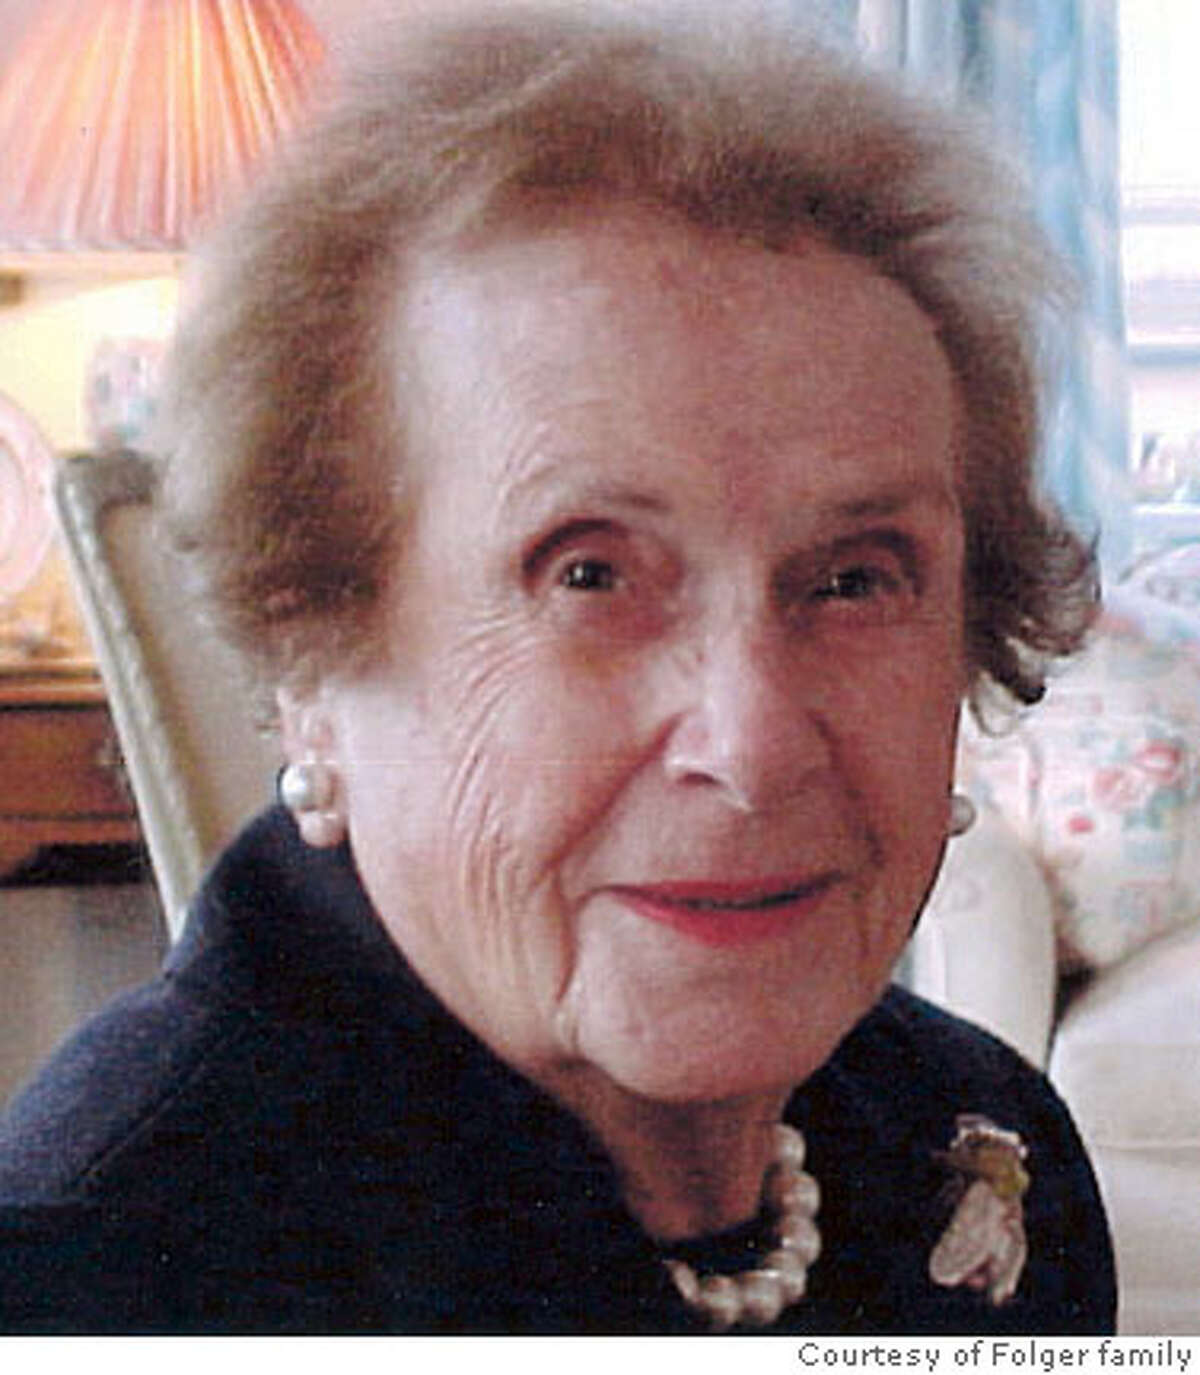 Obit photo of Inez M. Folger. Photo courtesy Folger family Ran on: 07-27-2007 Ines Mejia Folger was 100 at the end of her engaged life. Ran on: 07-27-2007